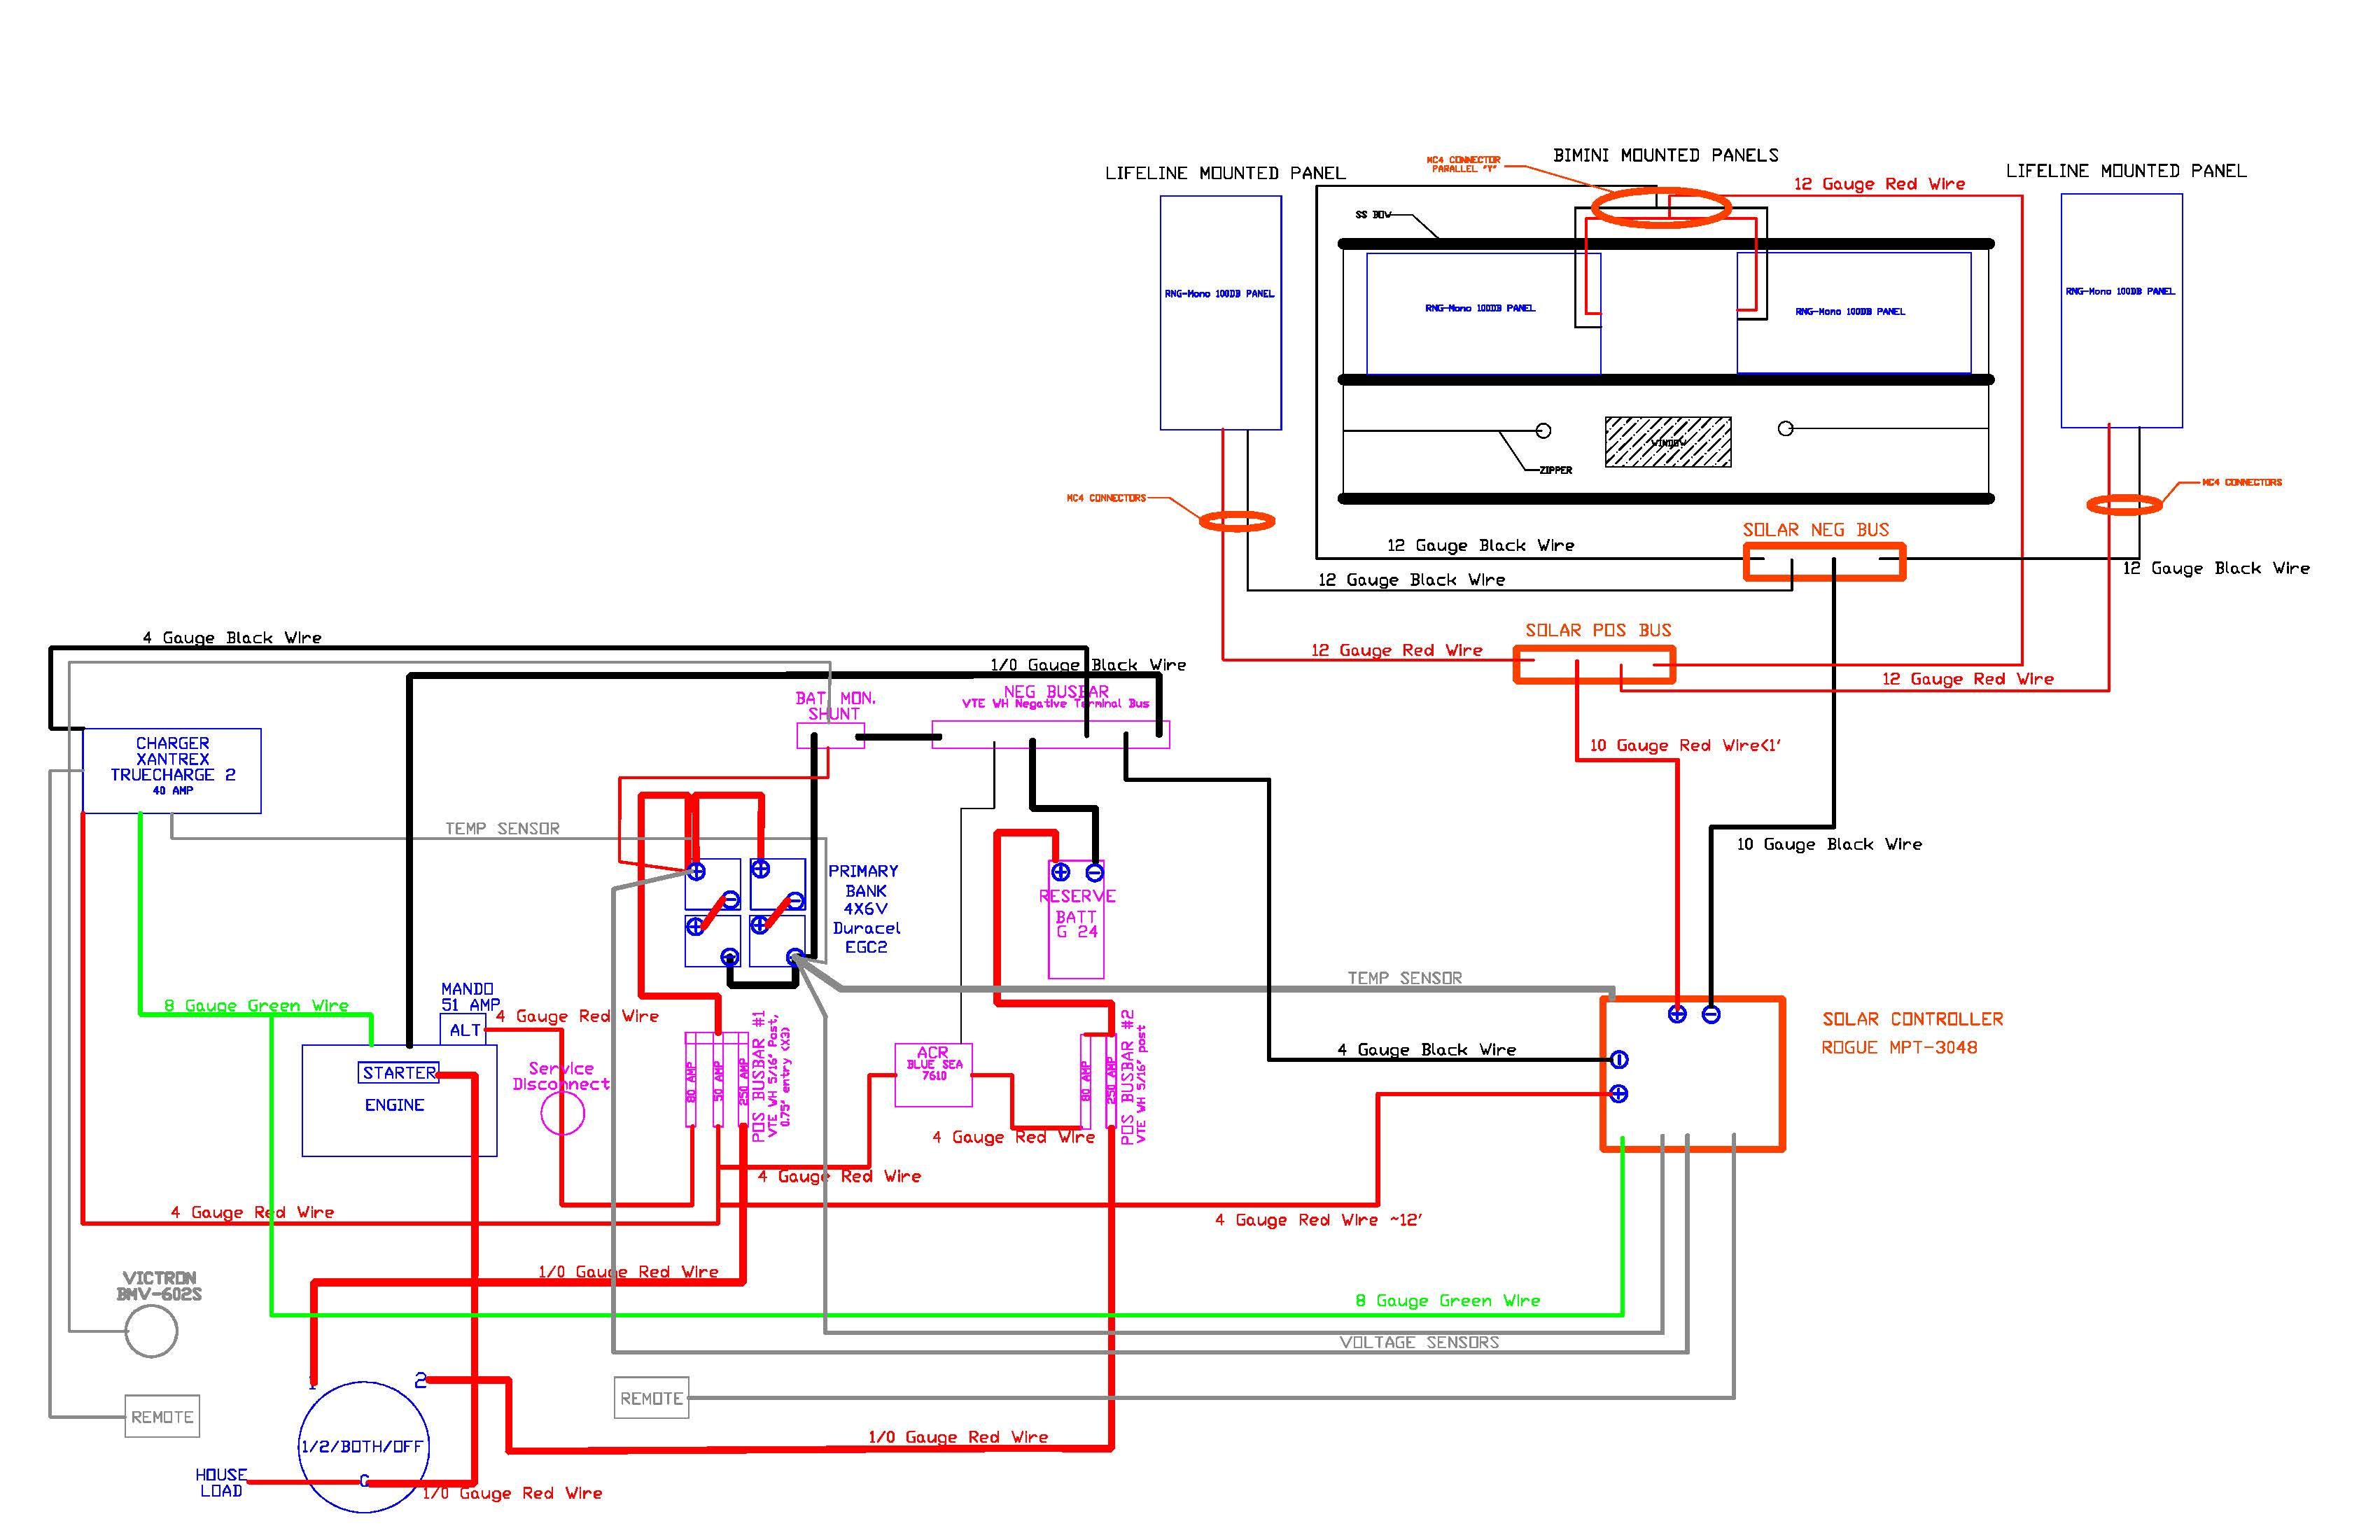 boat dock wiring diagram Download-JK WIRING DIAGRAM ADDING SOLAR 3-i